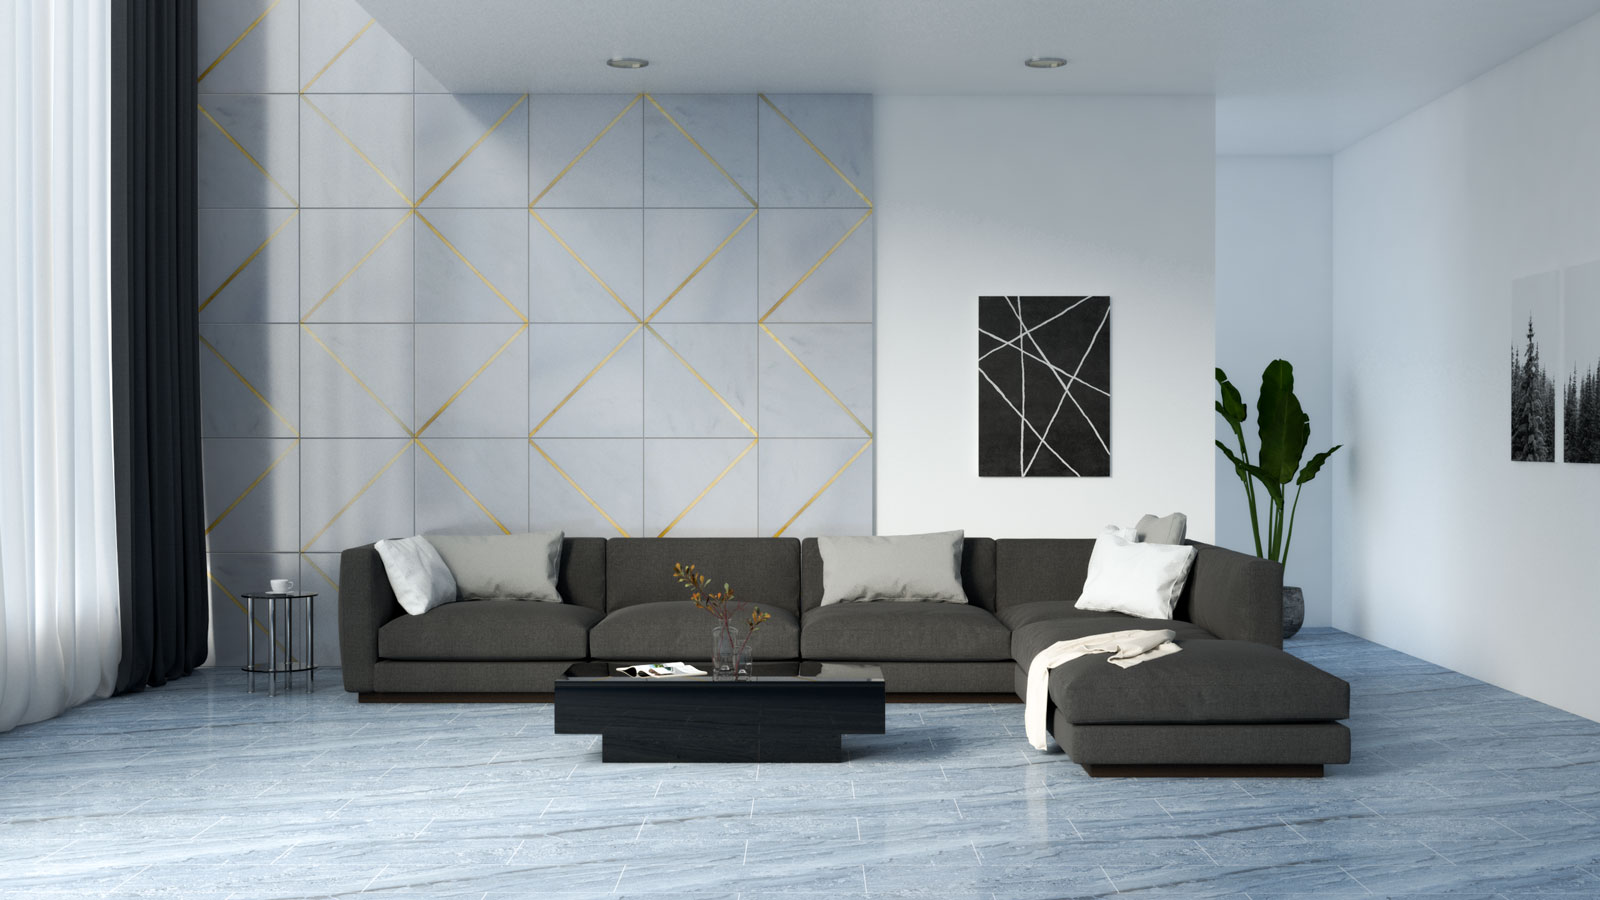 Living room with black furniture and blue tile flooring